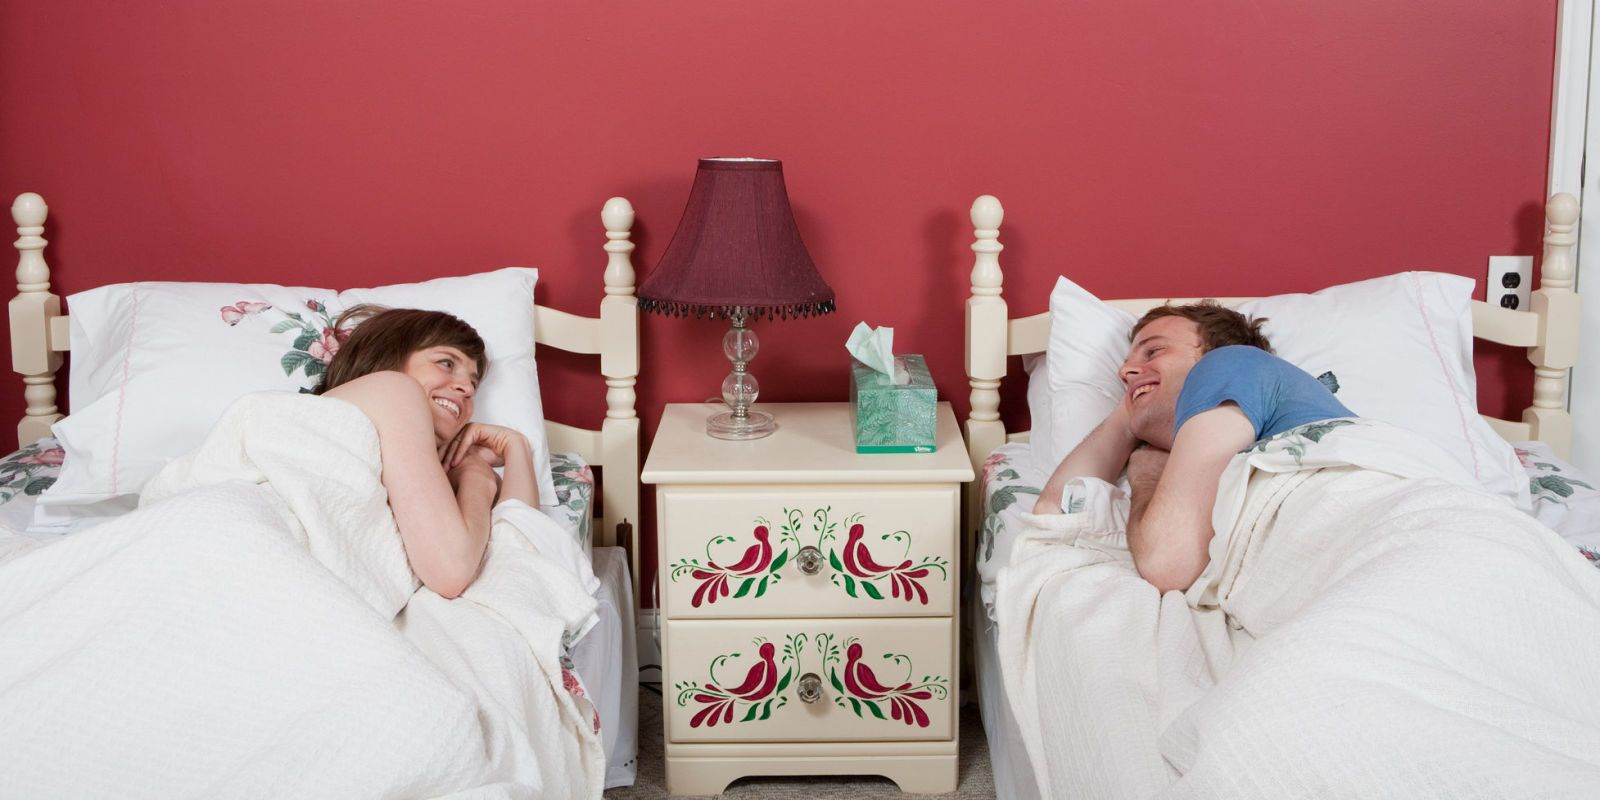 7 Relationship Benefits Of Sleeping In Separate Beds